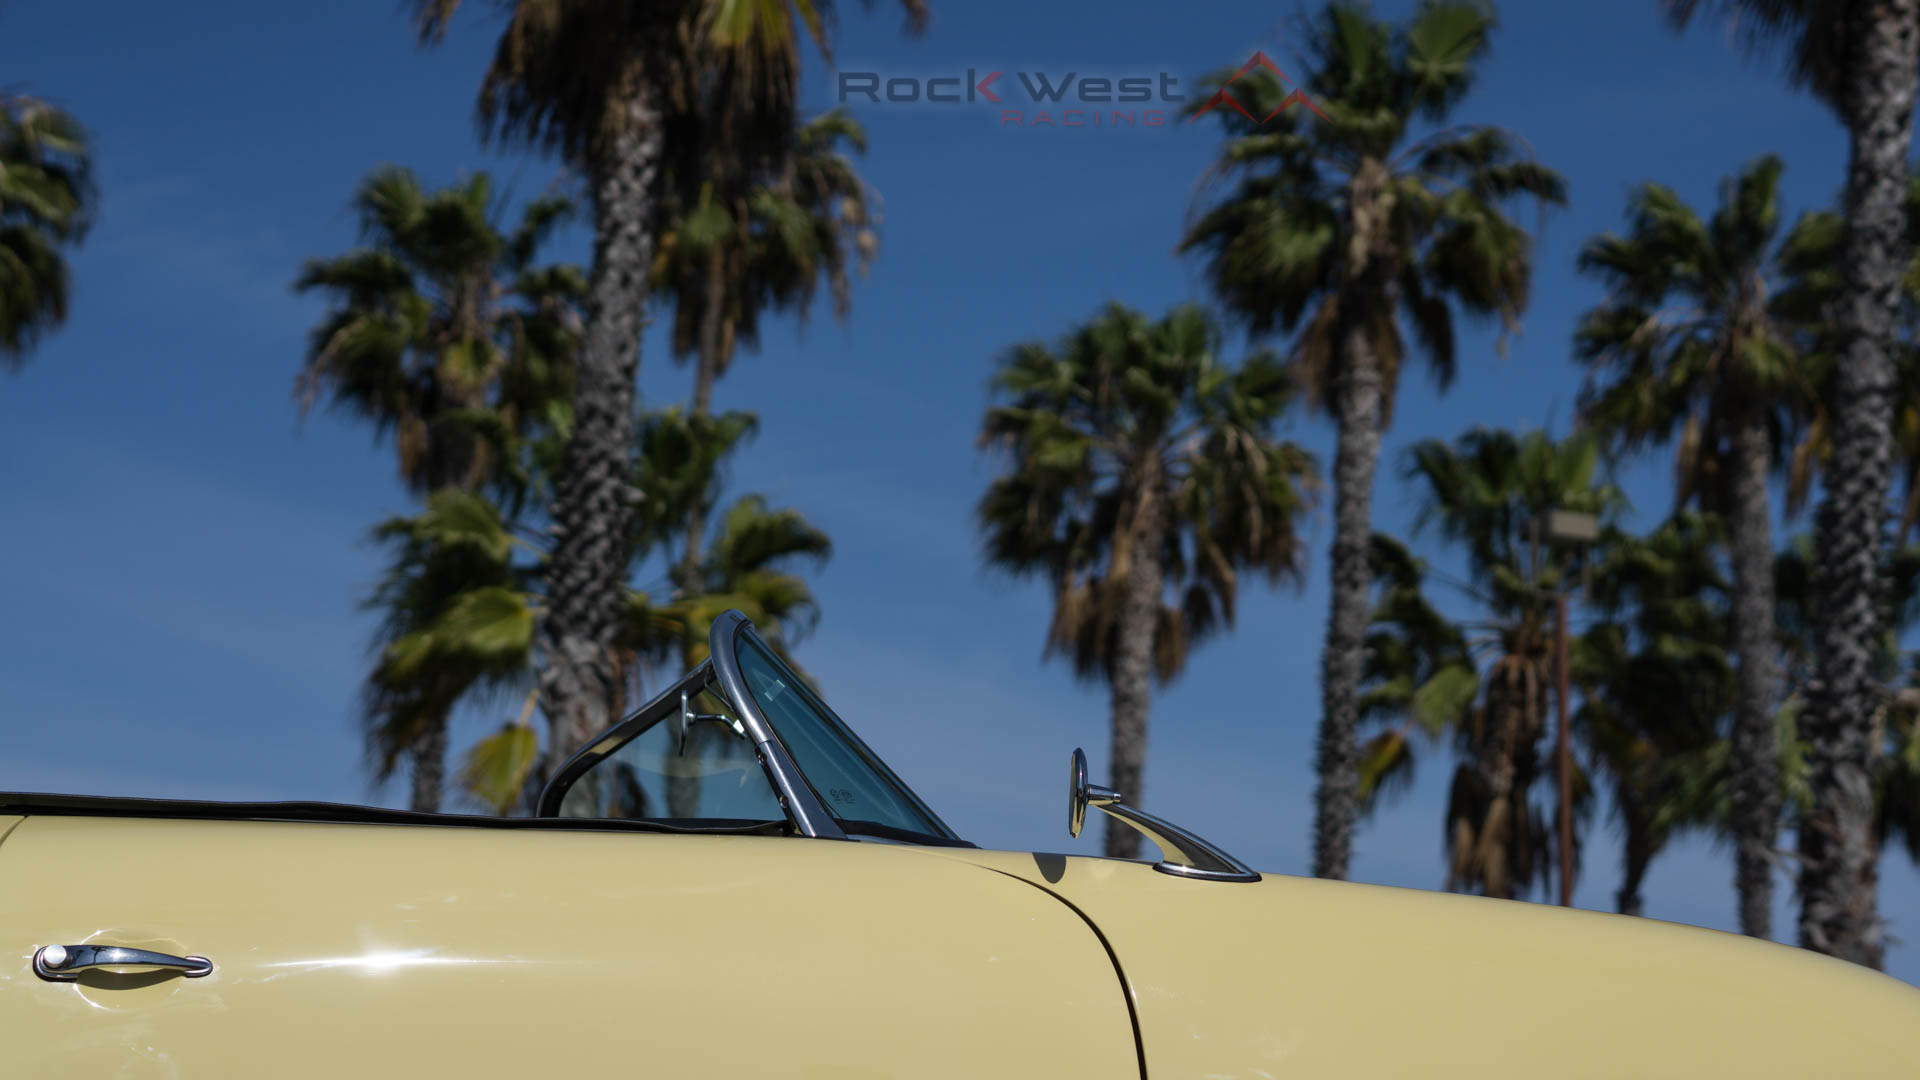 RW Speedster - Enjoying the Palm Trees (1920 x 1080 pixels)